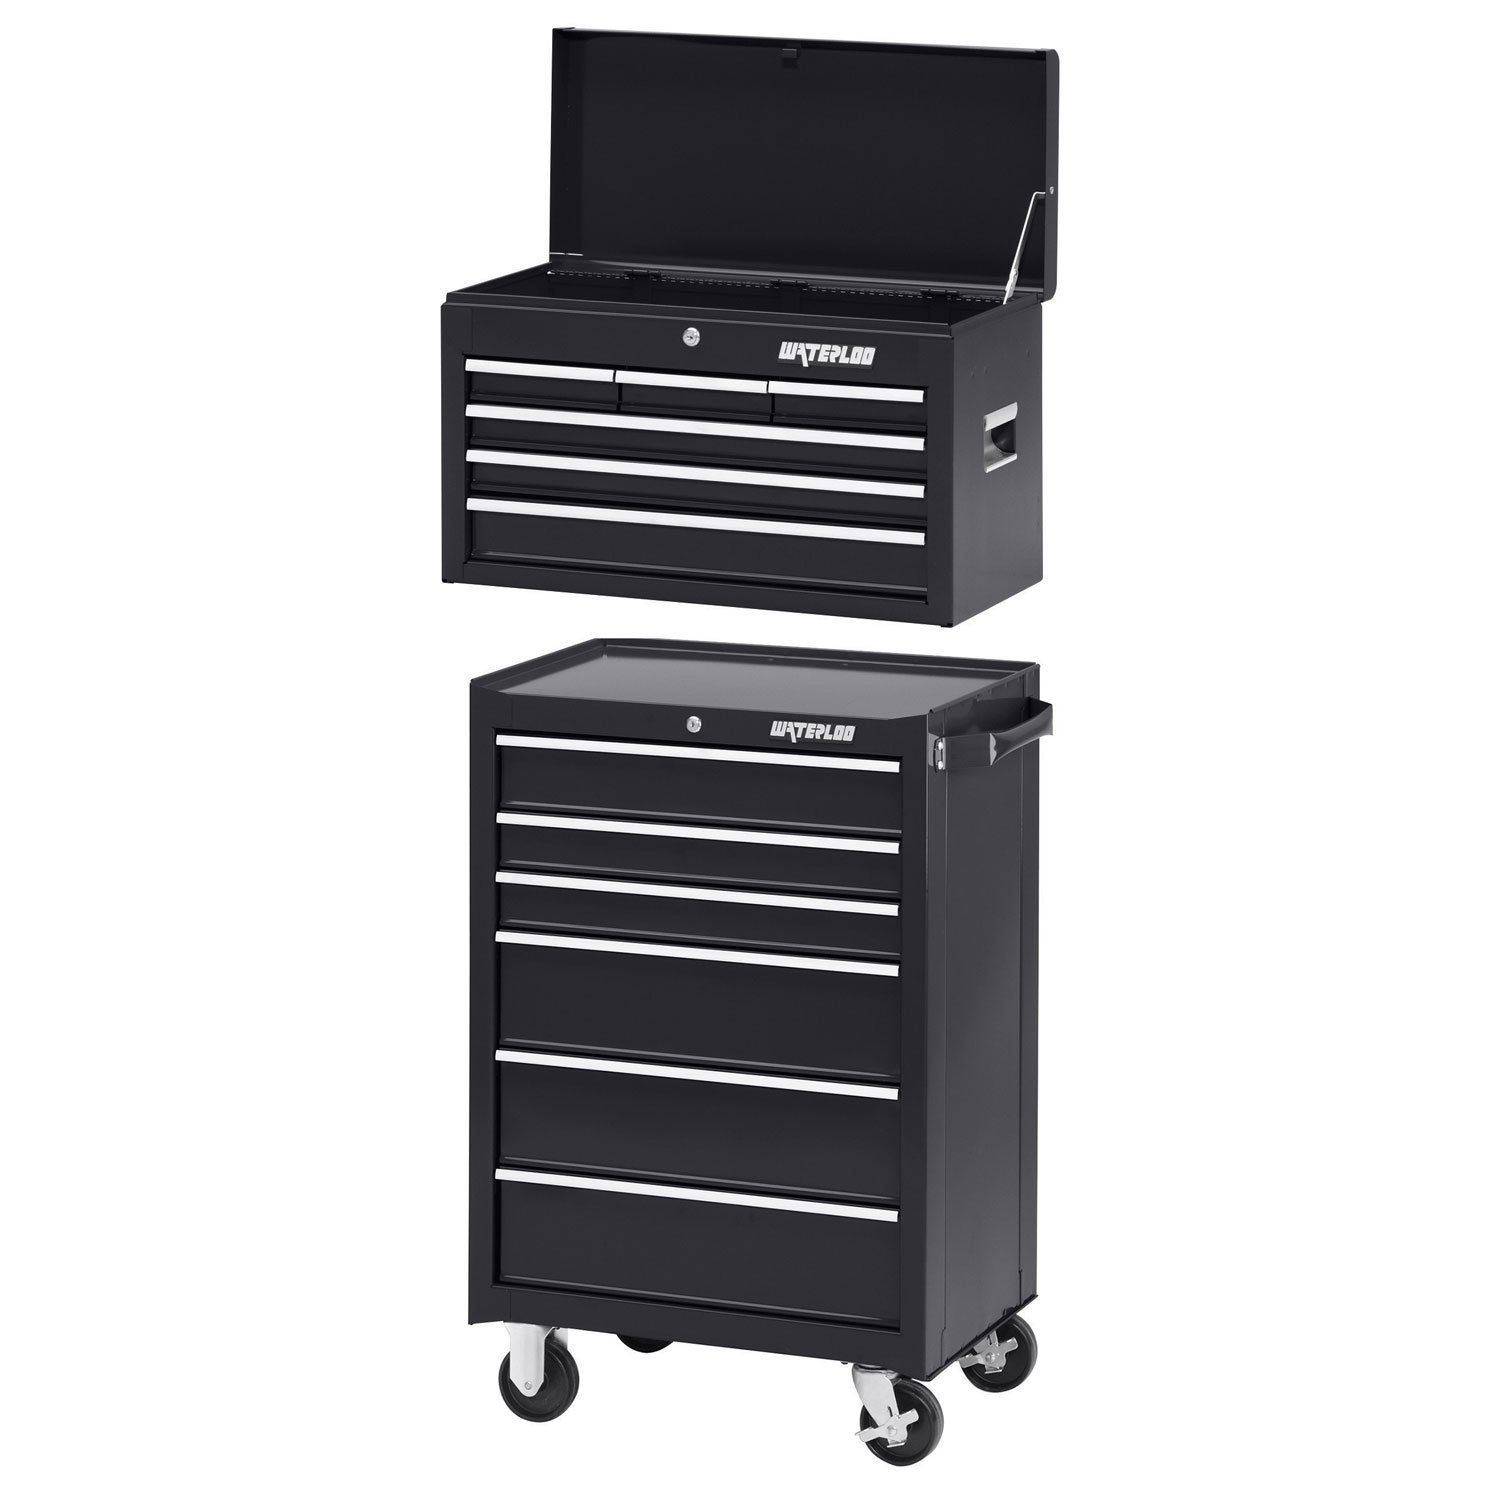 Waterloo WCH-266BK Series 6-Drawer Chest with WCA-266BK Cabinet, Caster/Liners